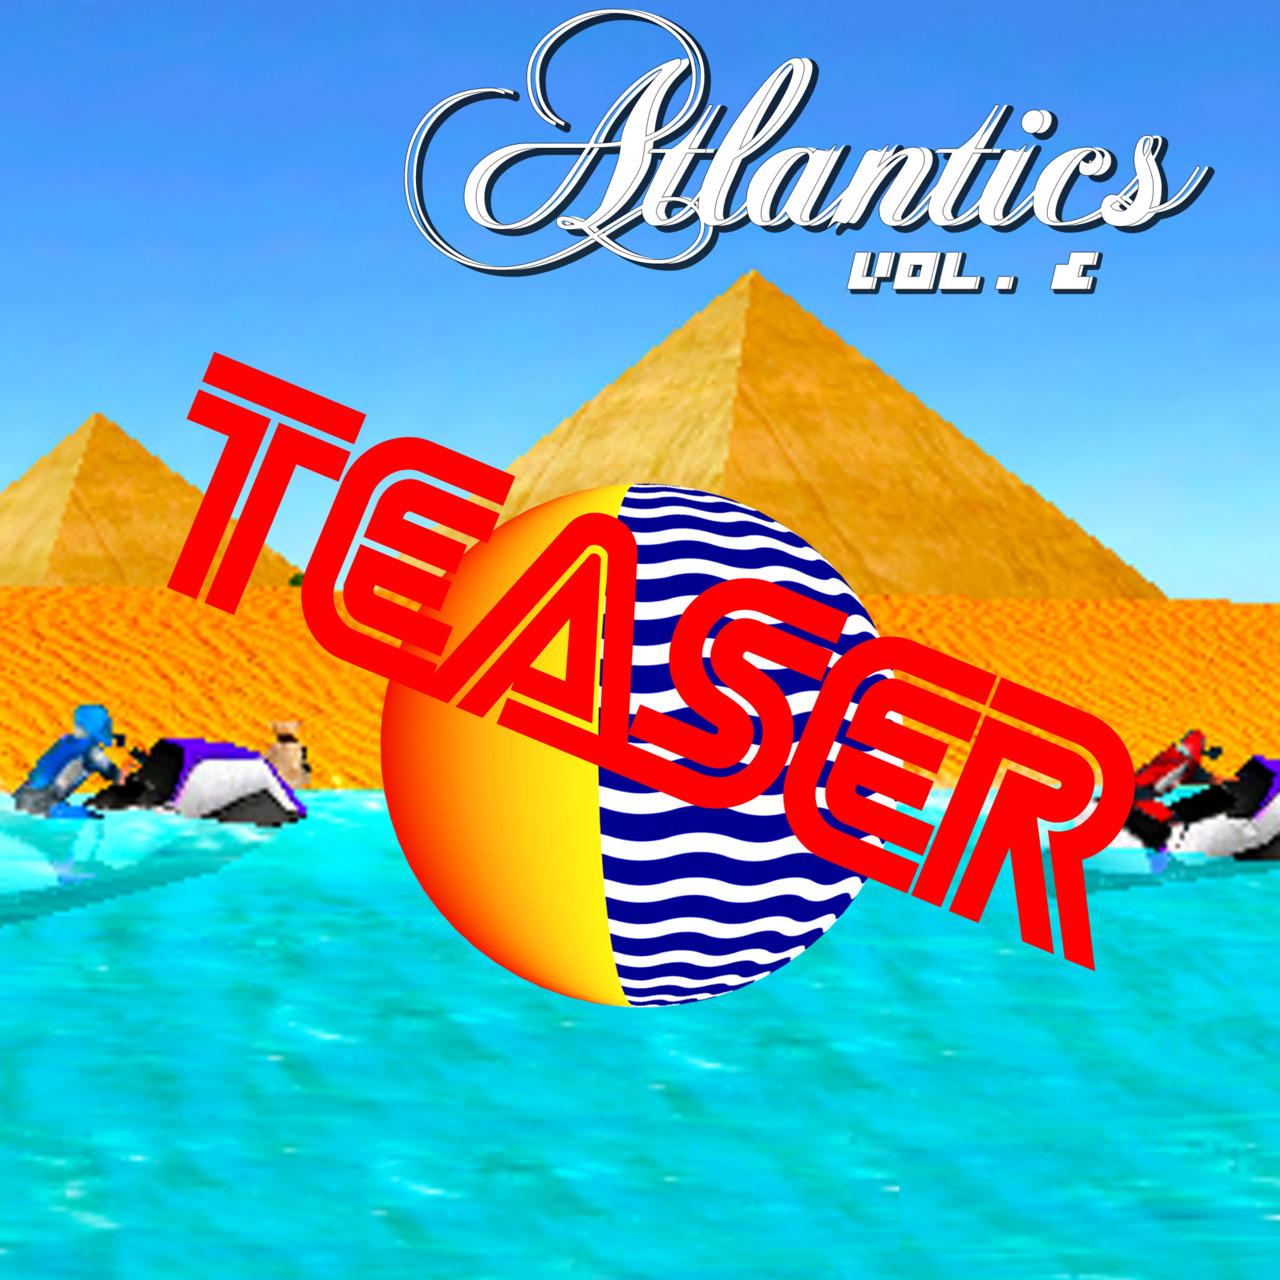 "#SPL4SHHHHH S000 FR3SH S000 C00L th1s ""atlantics vol.2"" by Astro Nauticoth1s ""atlantics vol.2"" by 1t's 1ncr3dible, 1t'5 a c00l sc3ne betw33n ch1llwave sound and 1 don't know what 3lse(#sea #wave #dreamyvocals #greatvibes). BUT IT'S GREAT 4nd 1N FR33 D0WNL04D ON H1S BANDCAMP!!!!!!!!!!!!http://astronautico.bandcamp.com/album/atlantics-vol-2"